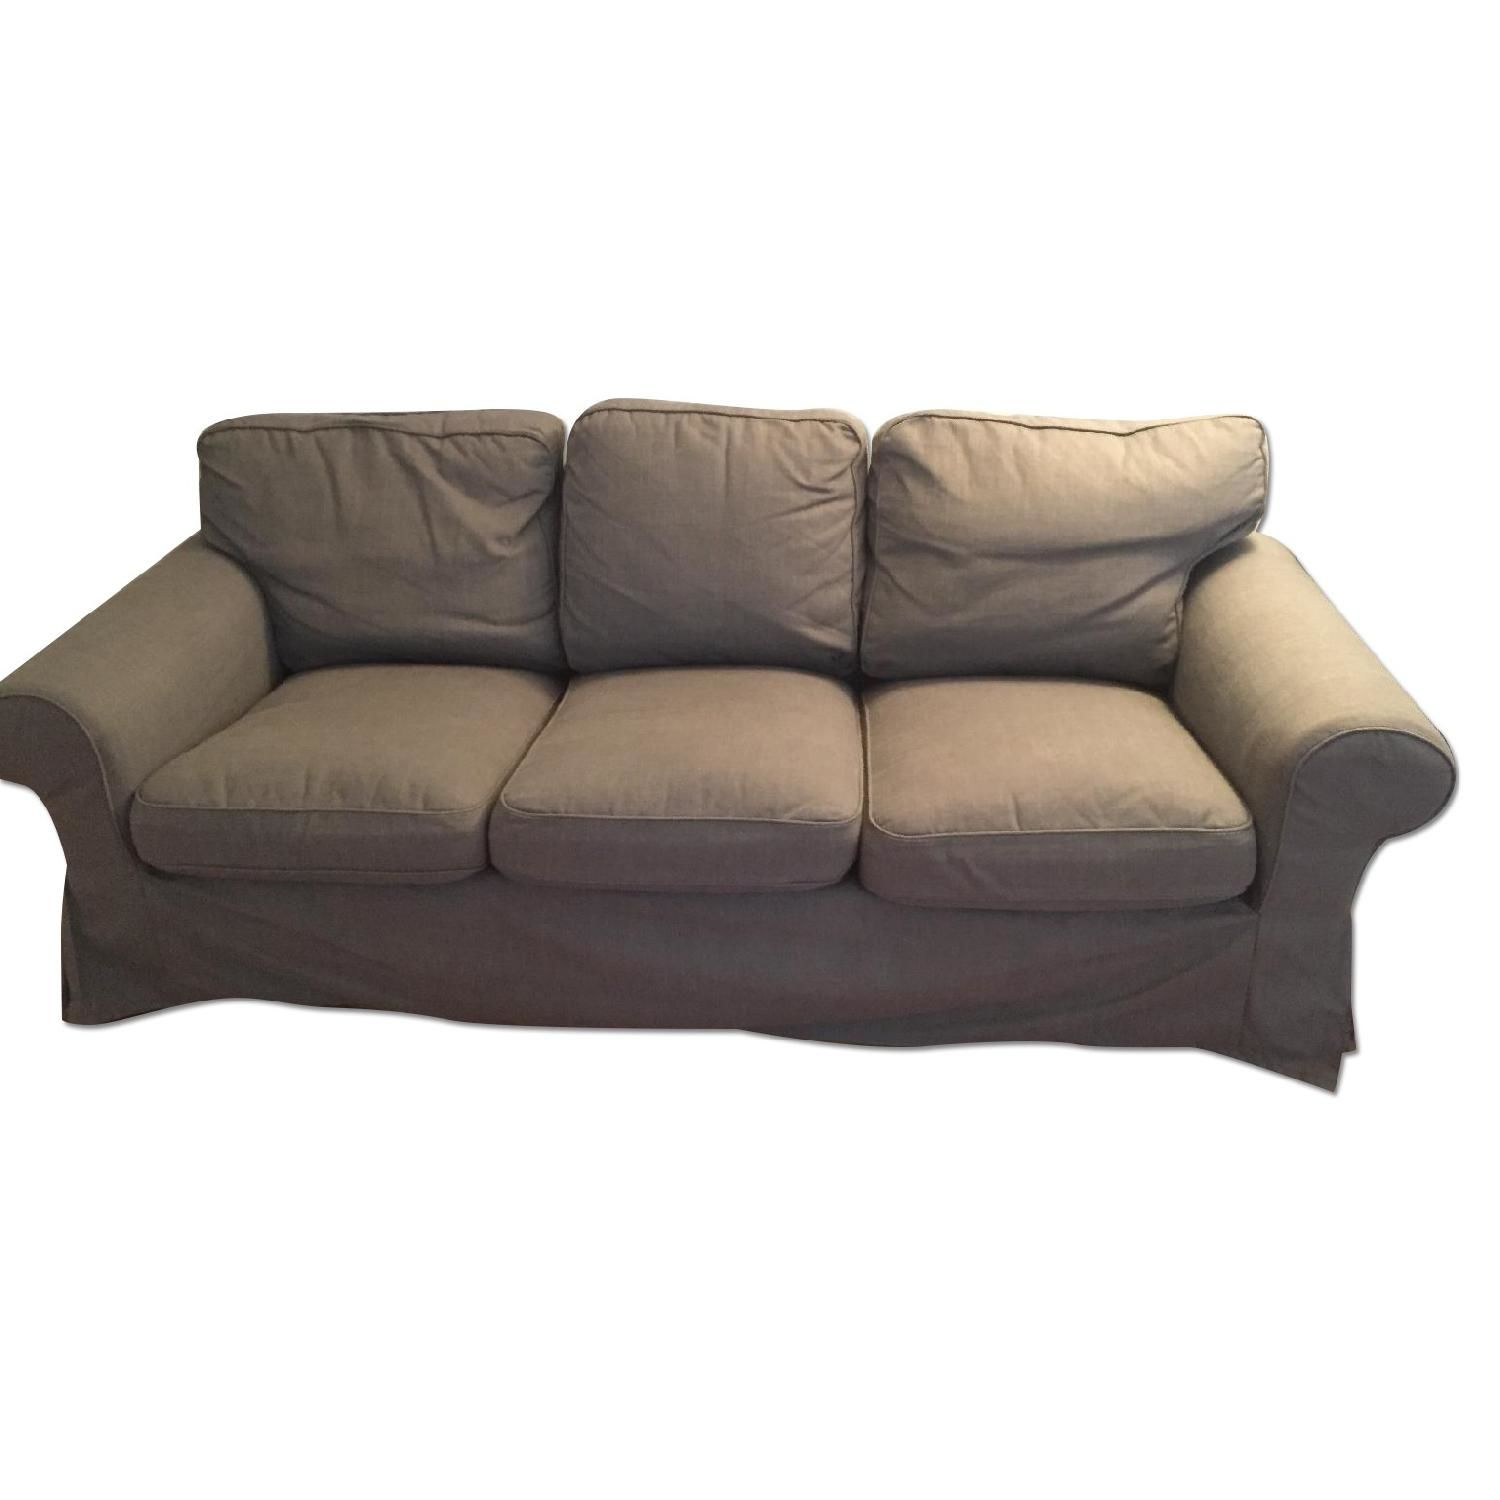 contemporary kivik sofa cover picture-Best Kivik sofa Cover Ideas